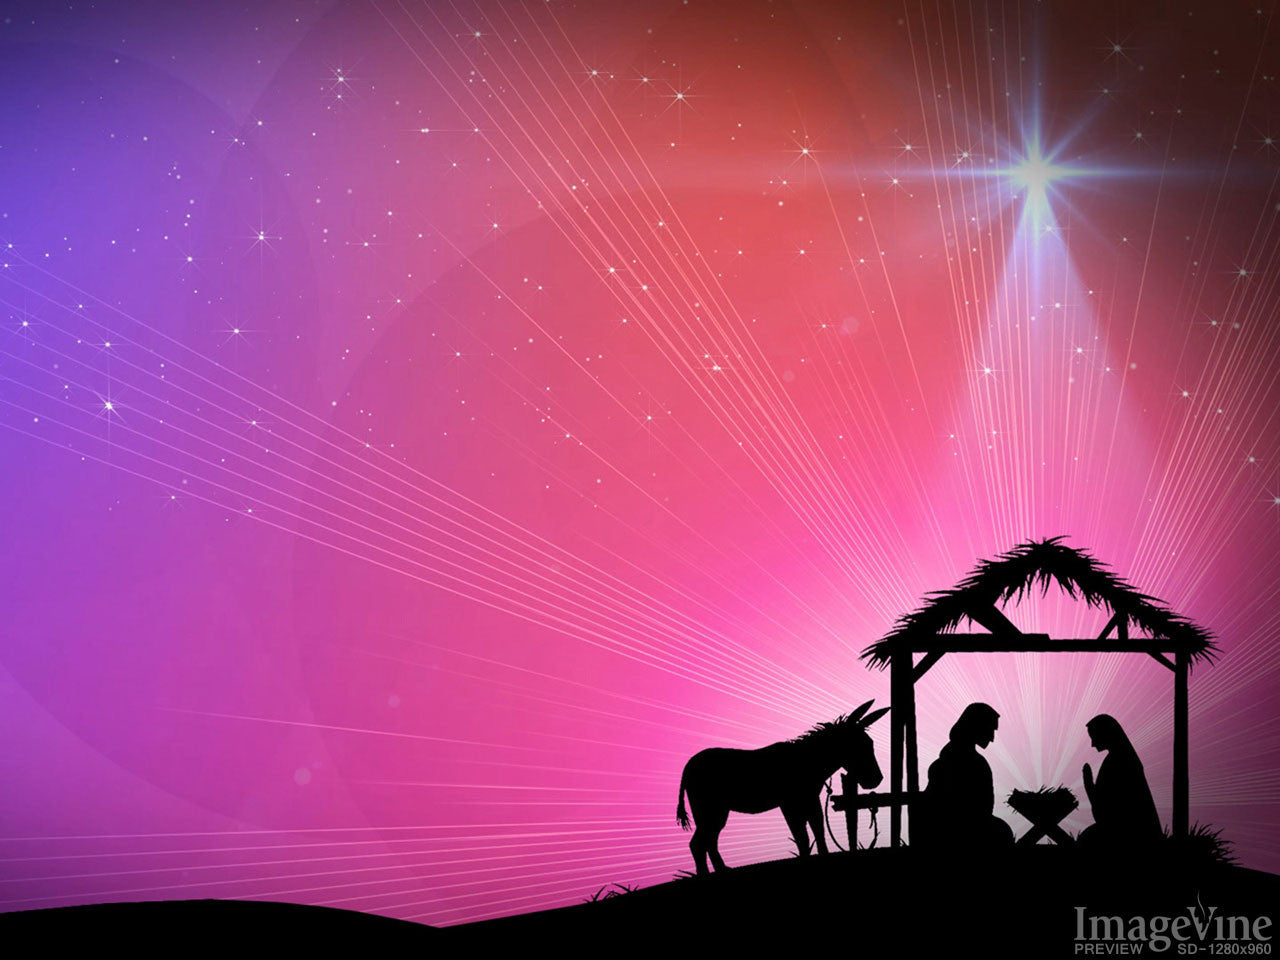 The Christmas Story Backgrounds – ImageVine